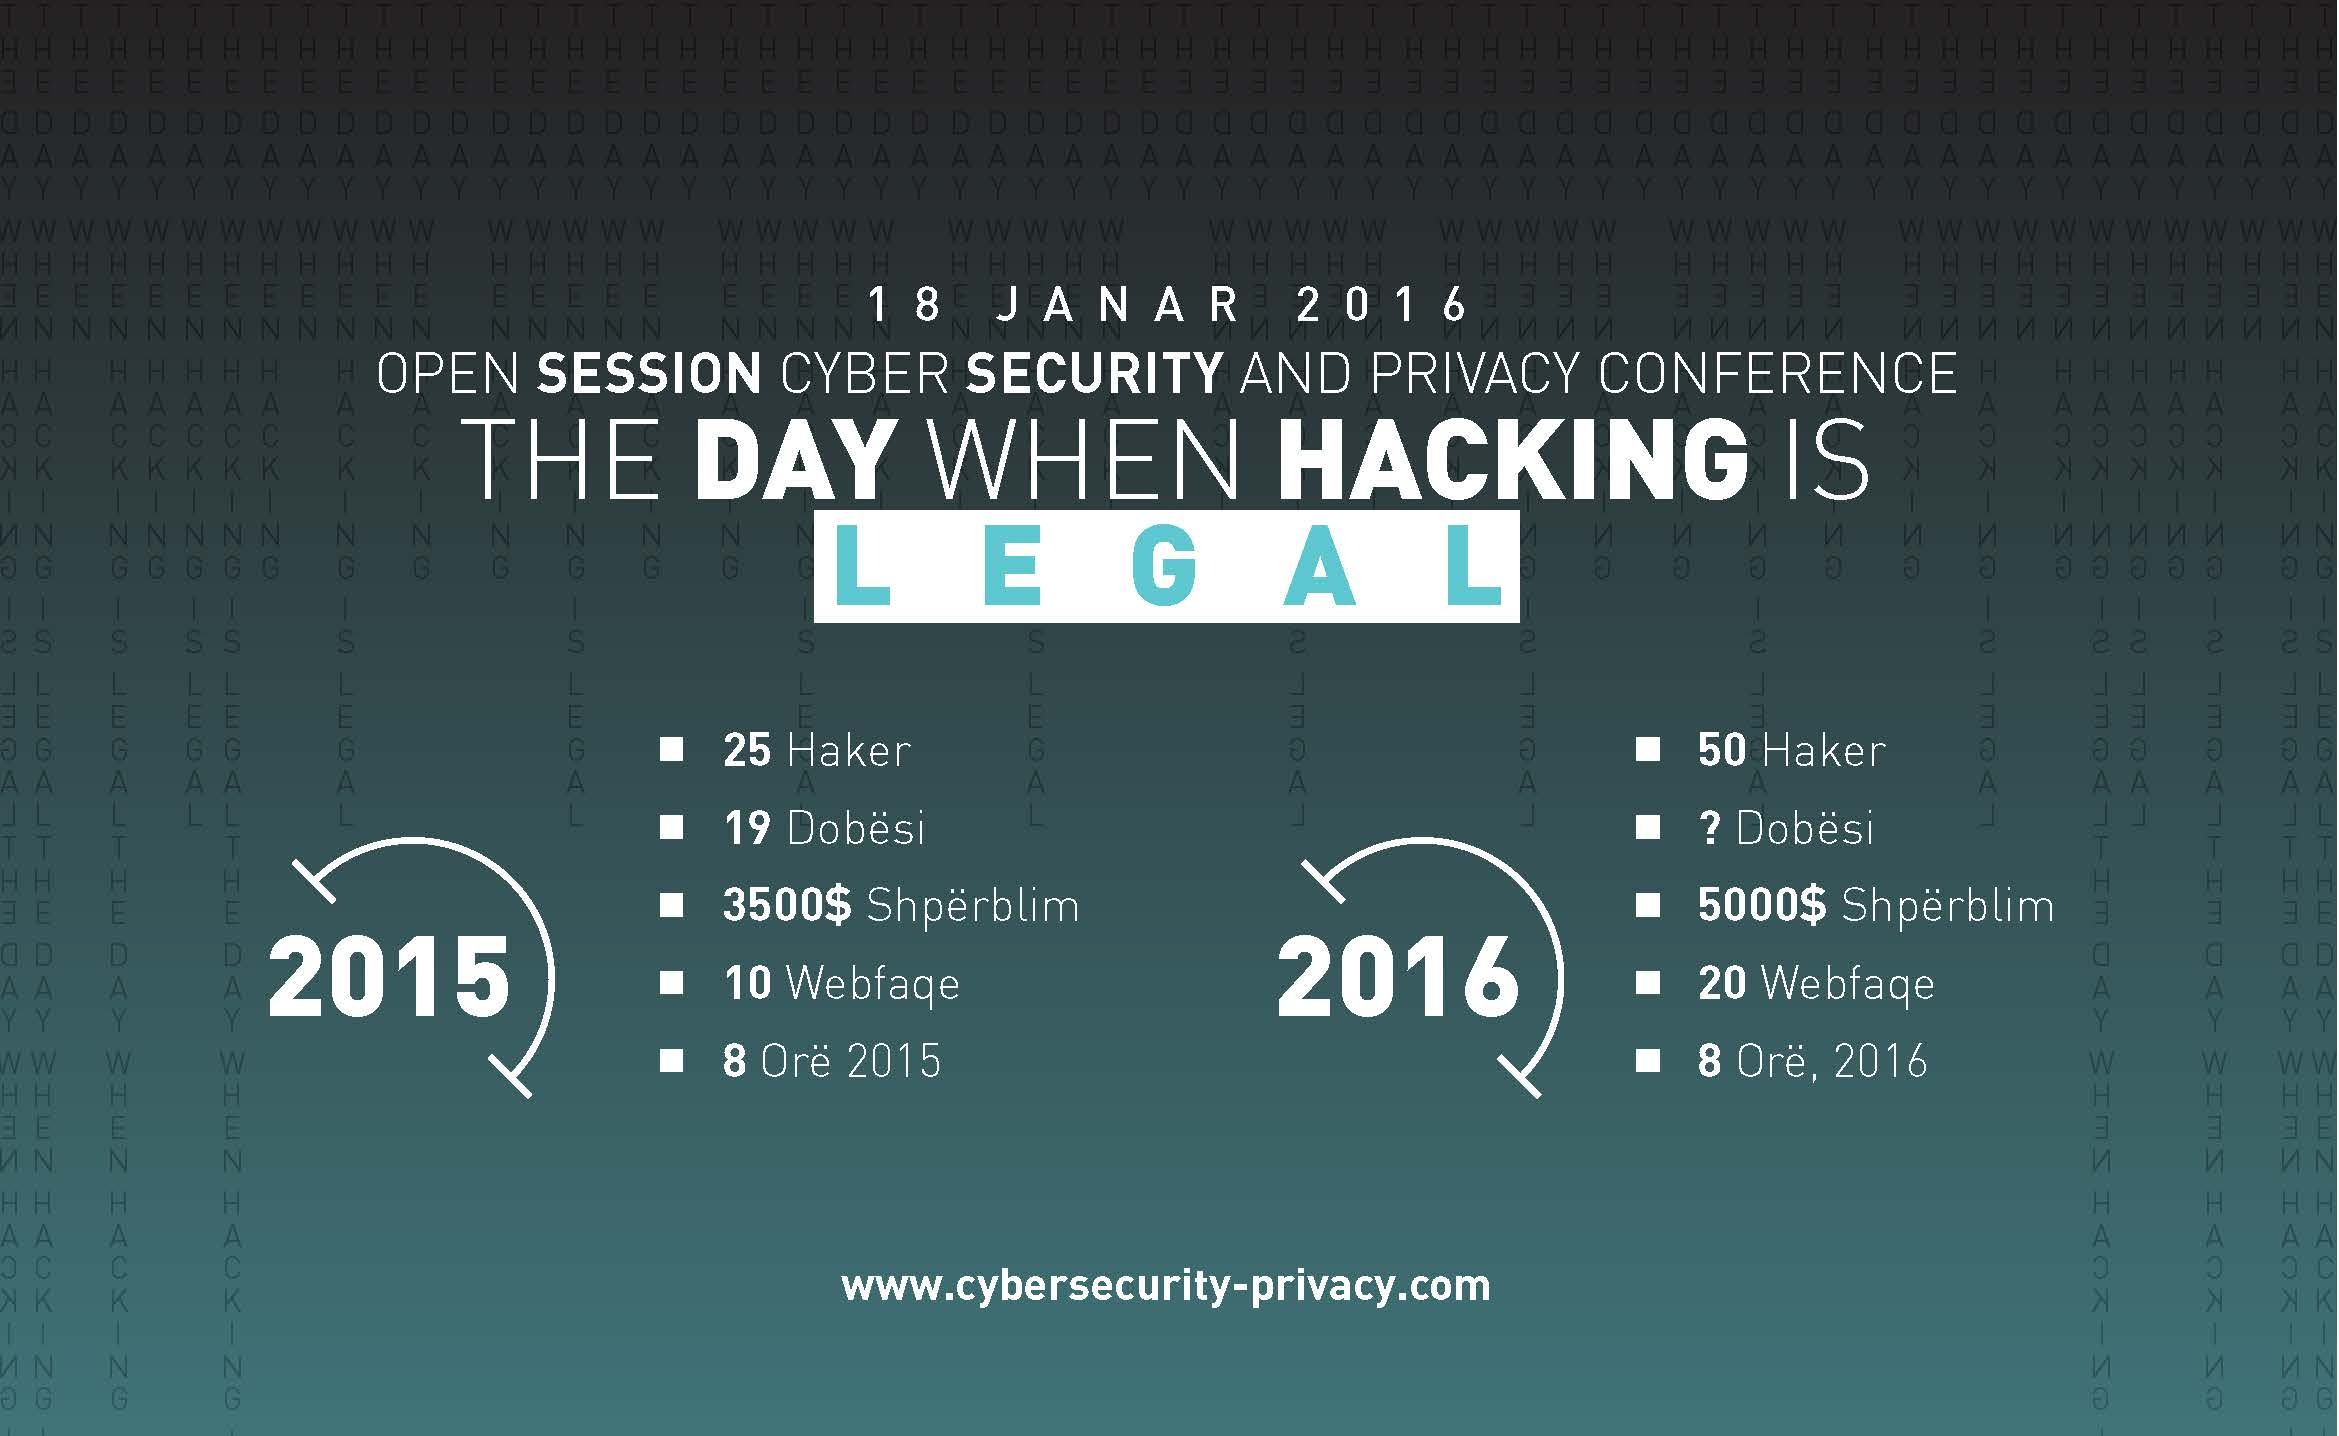 "Cyber Security Privacy hap dyert e ""The Day When Hacking is Legal"" për 50 hakerë dhe 20 uebfaqe deri më 11 Janar"